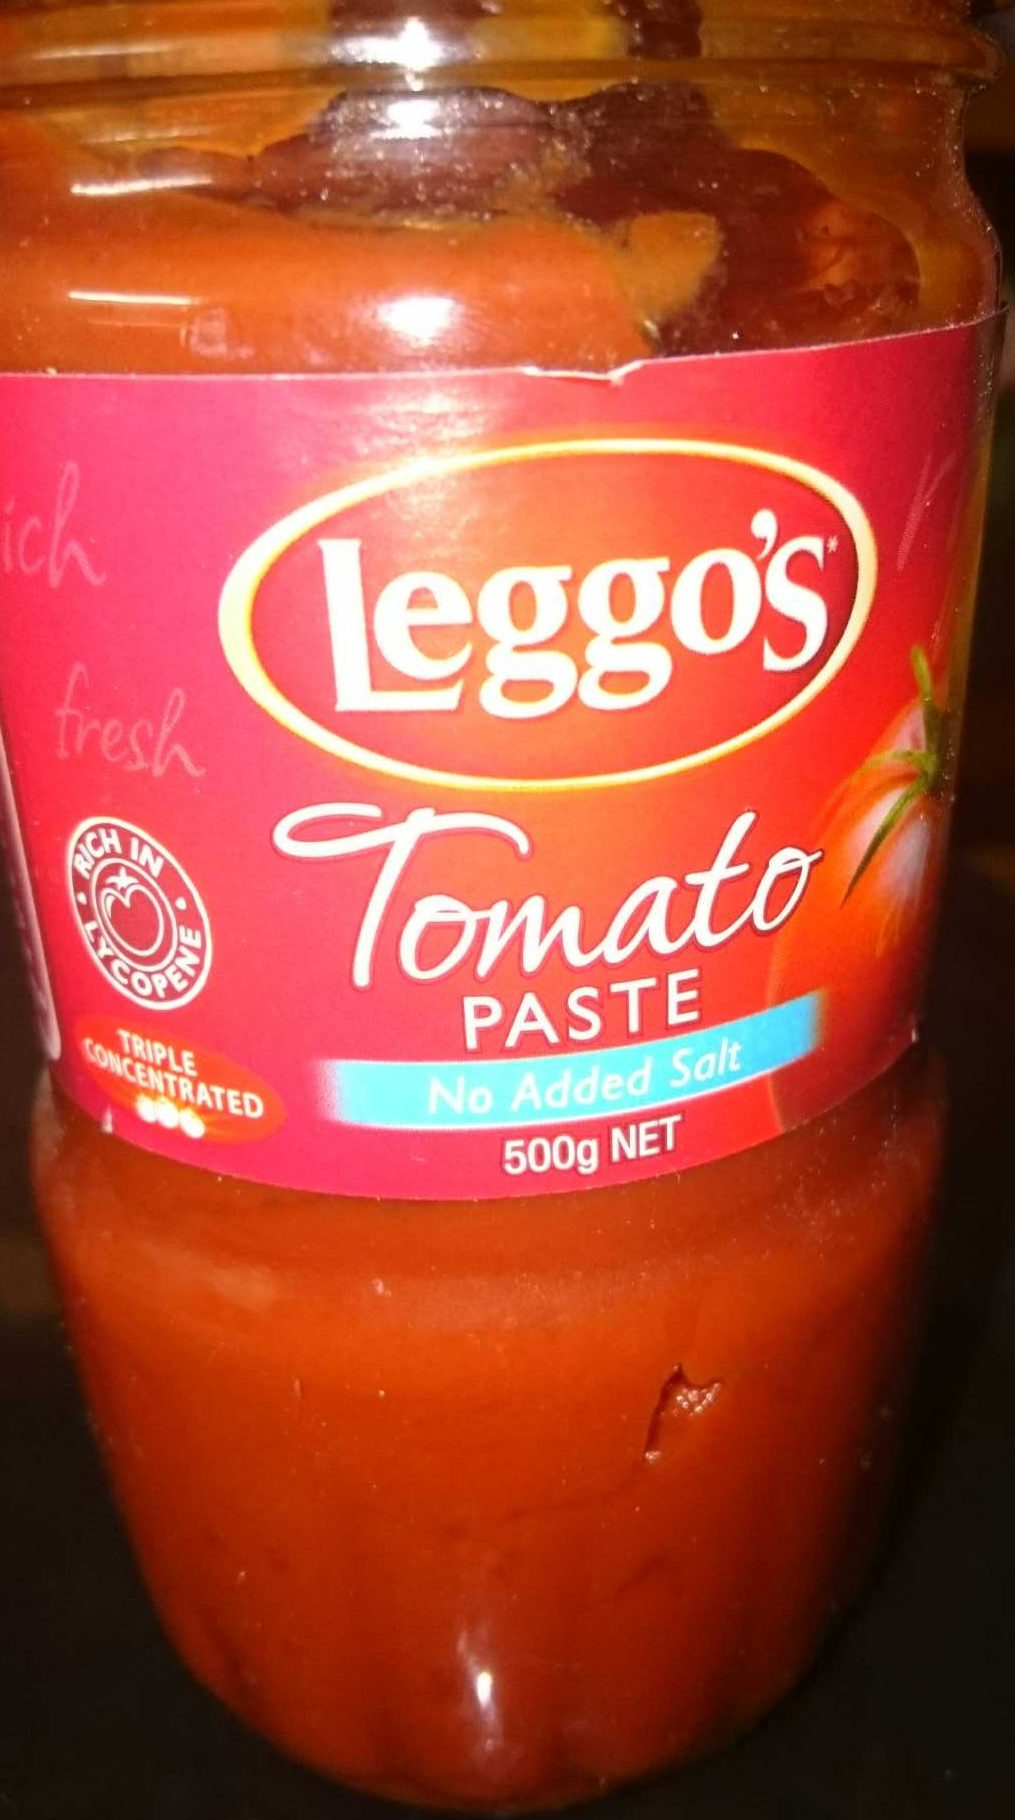 Tomato paste no added salt - Product - en